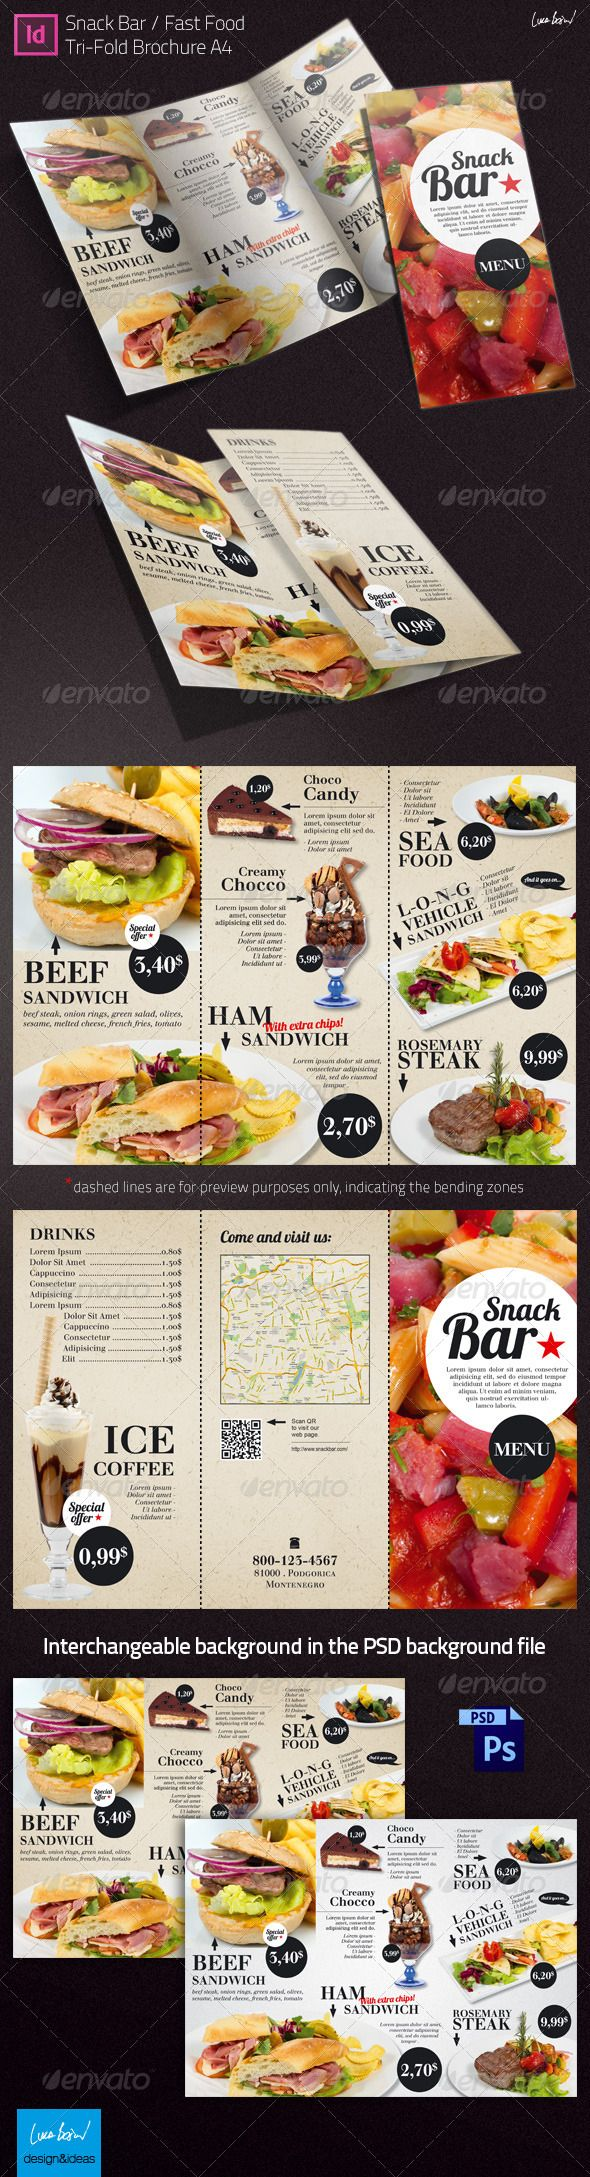 Have you ever seen a 1 page menu?